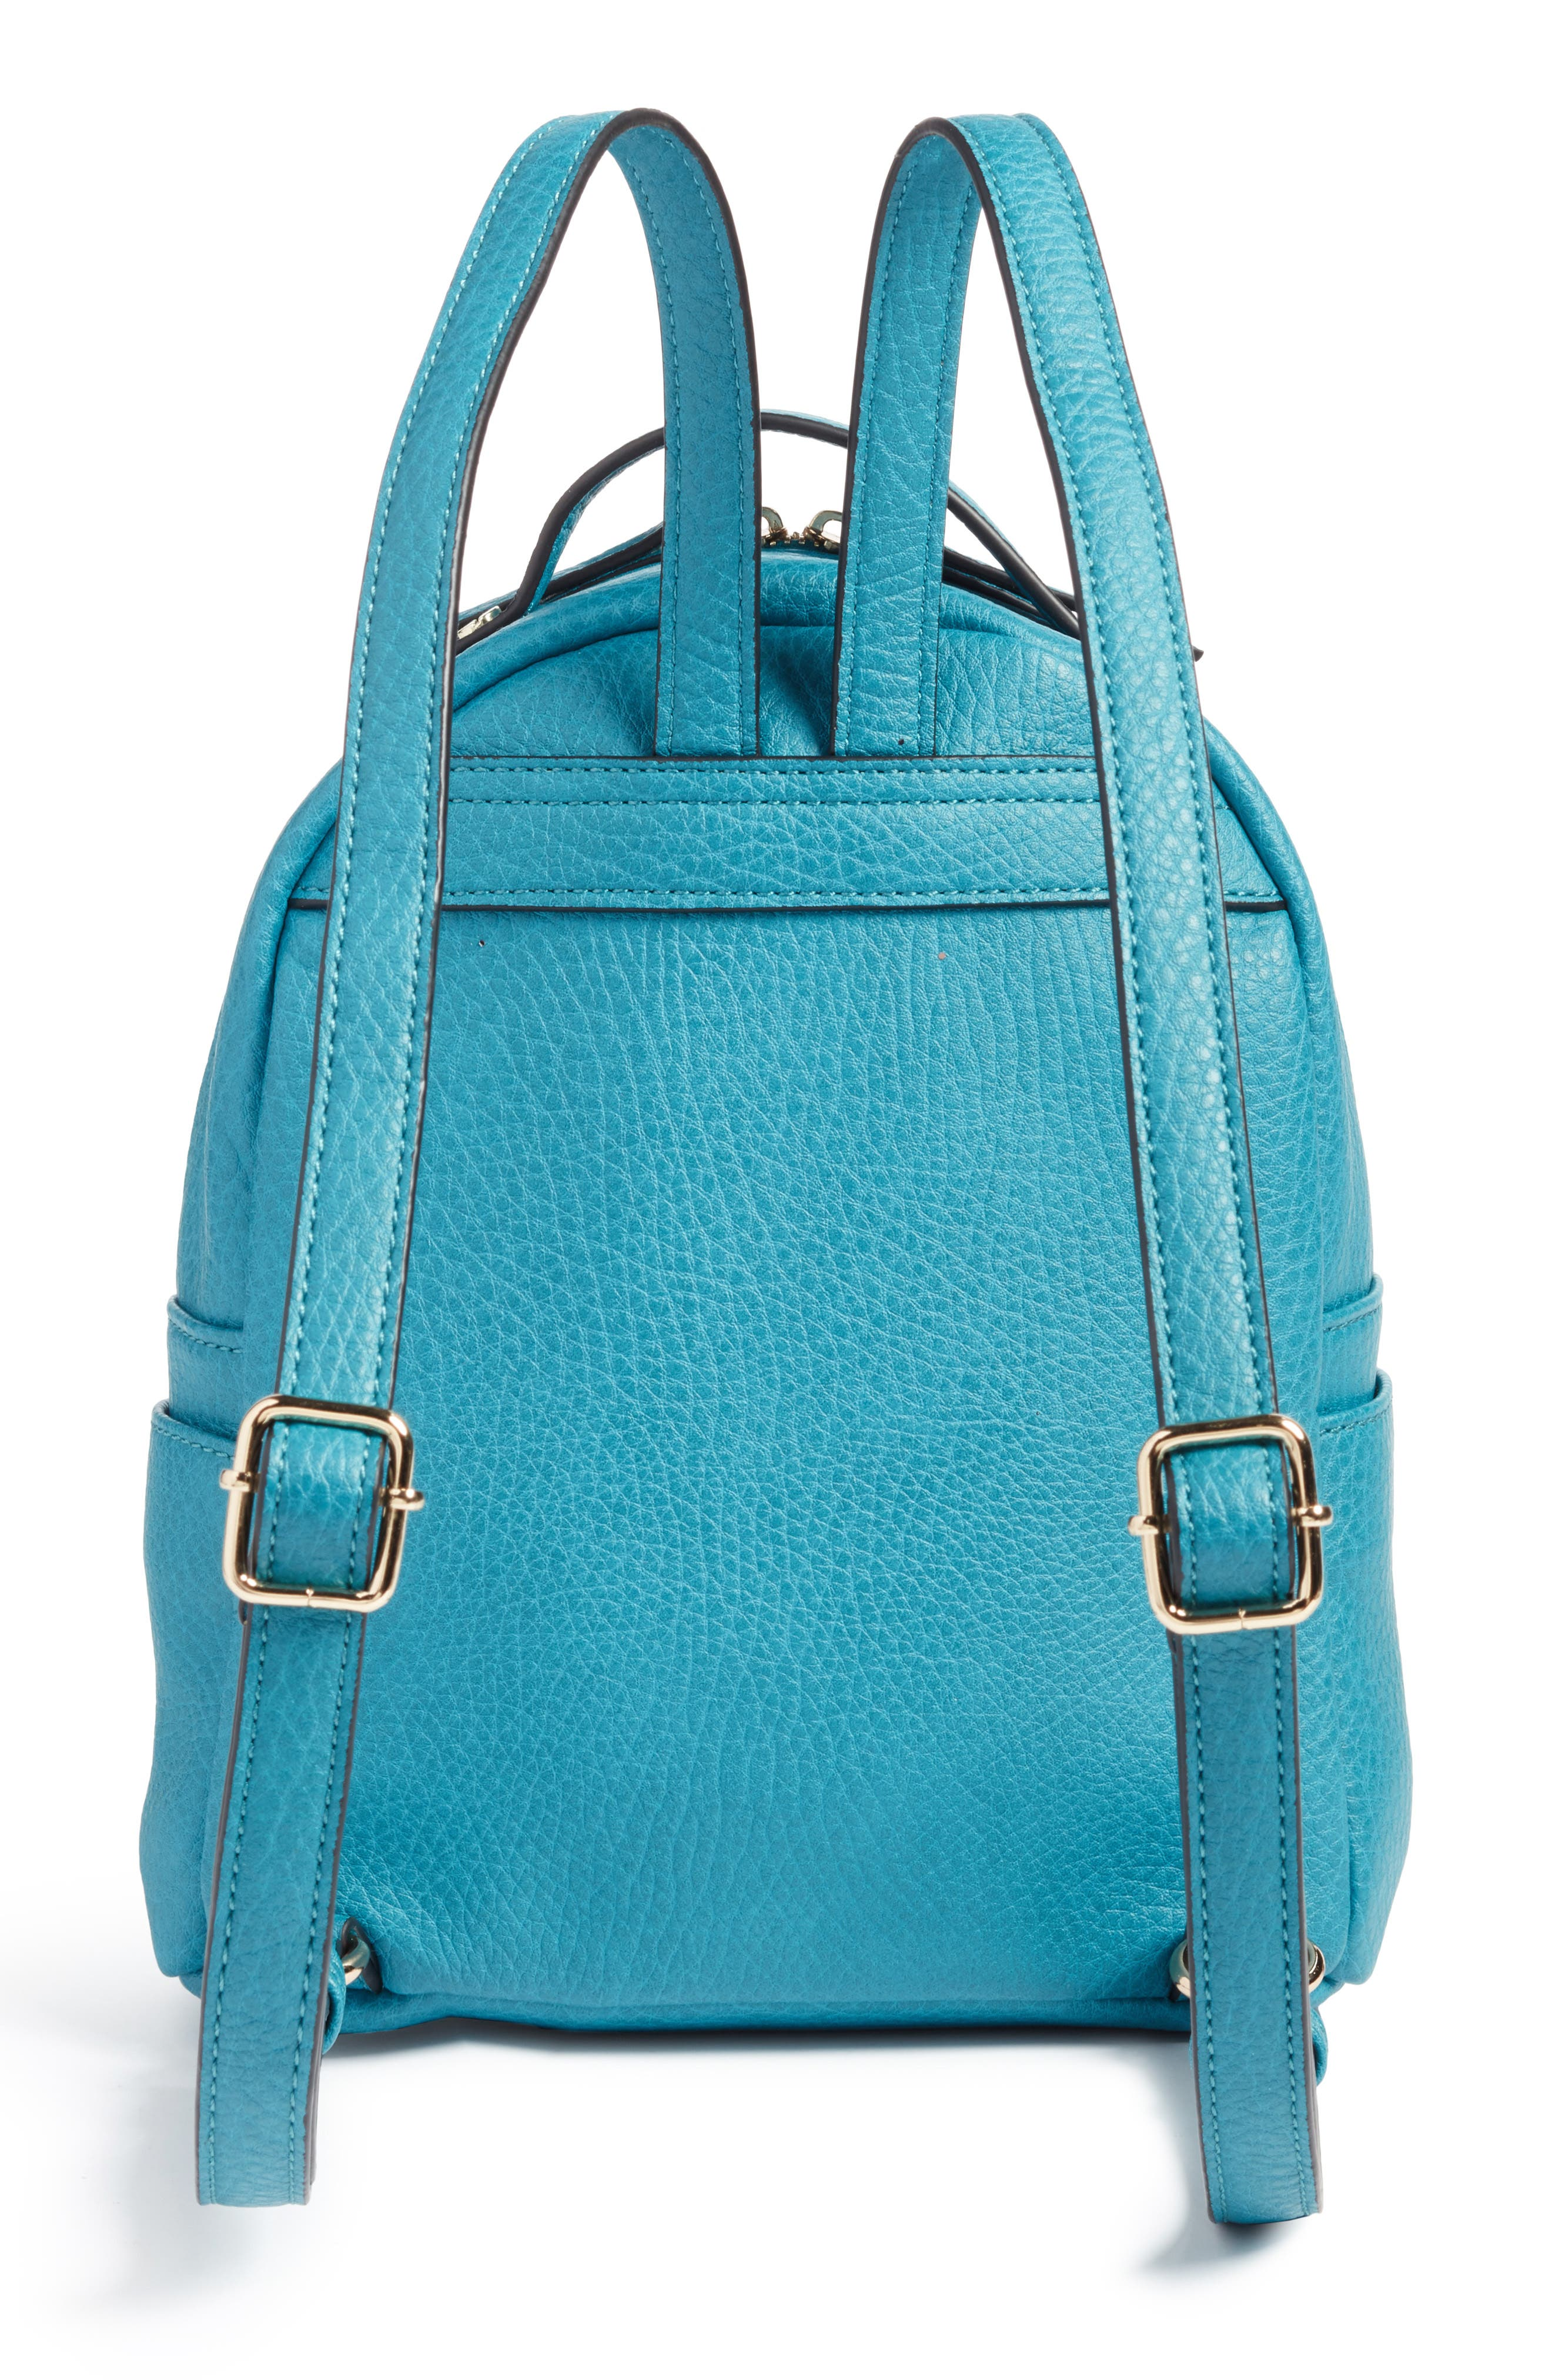 Mali + Lili Vegan Leather Backpack,                             Alternate thumbnail 3, color,                             Blue